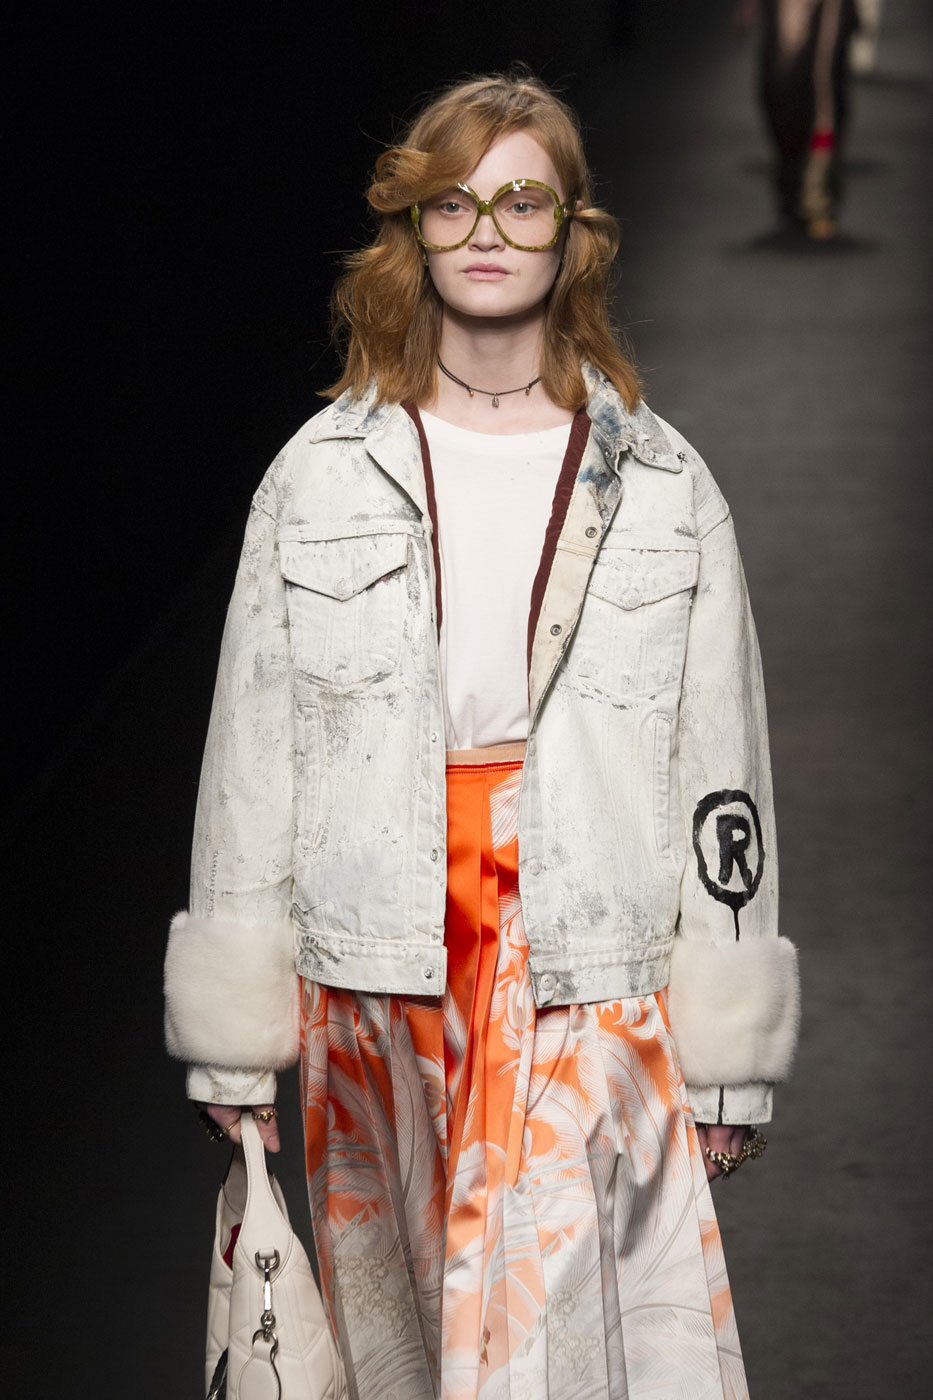 A model (who looks remarkably like Barb from Netflix's 'Stranger Things,' no?) rocks painted denim on the Gucci Fall 2016 runway.